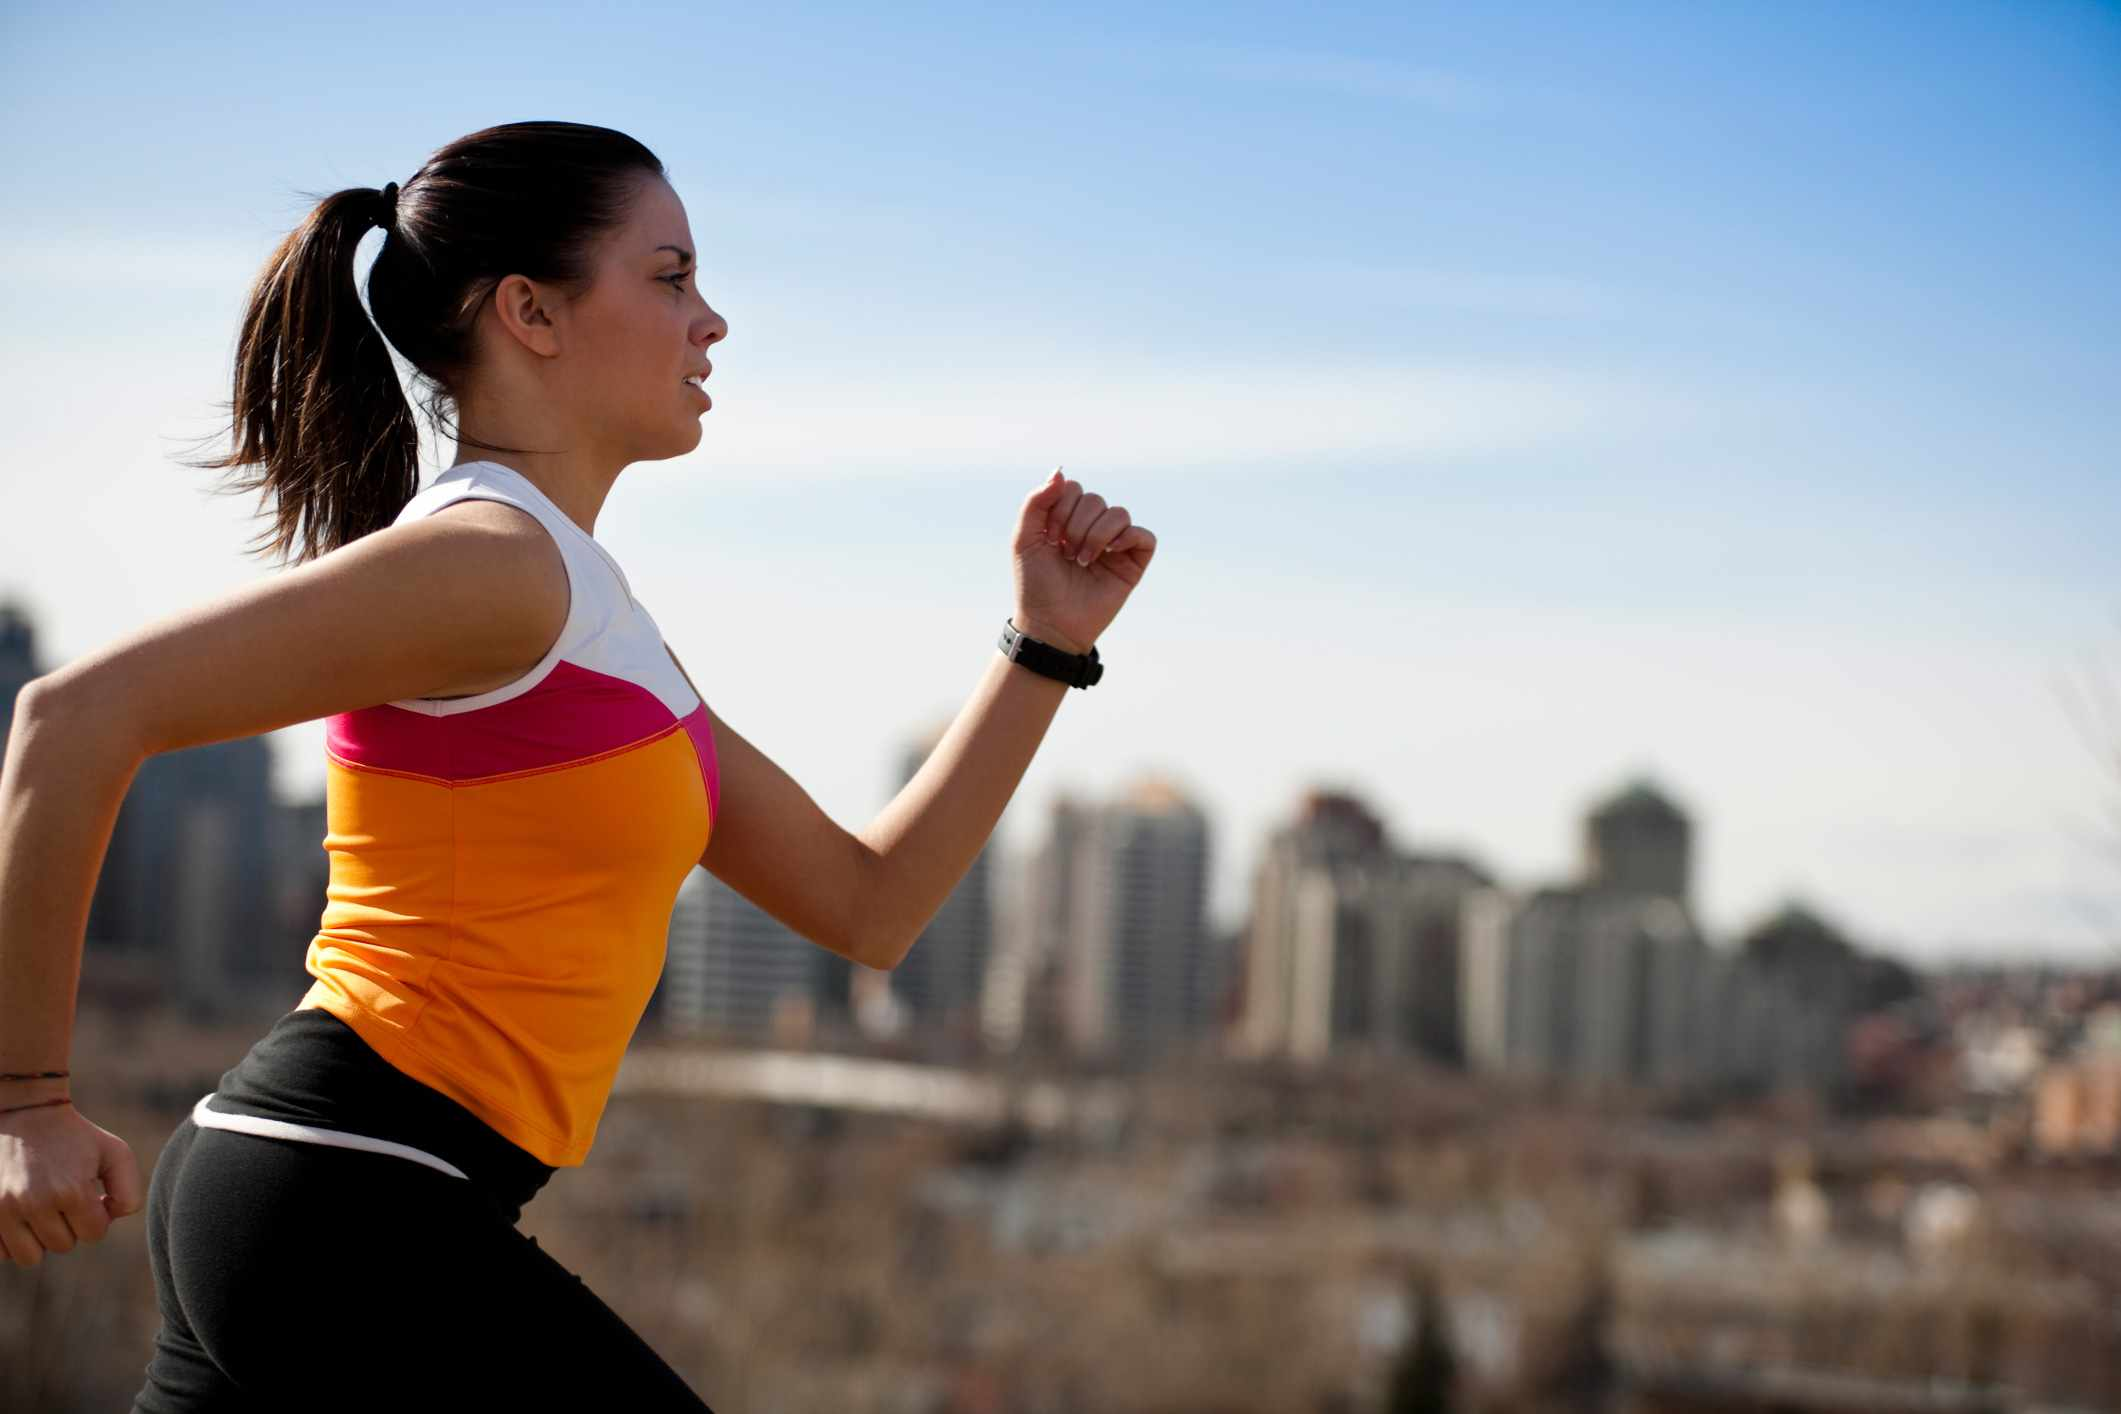 is-it-safe-in-pregnancy-to-go-running_45504